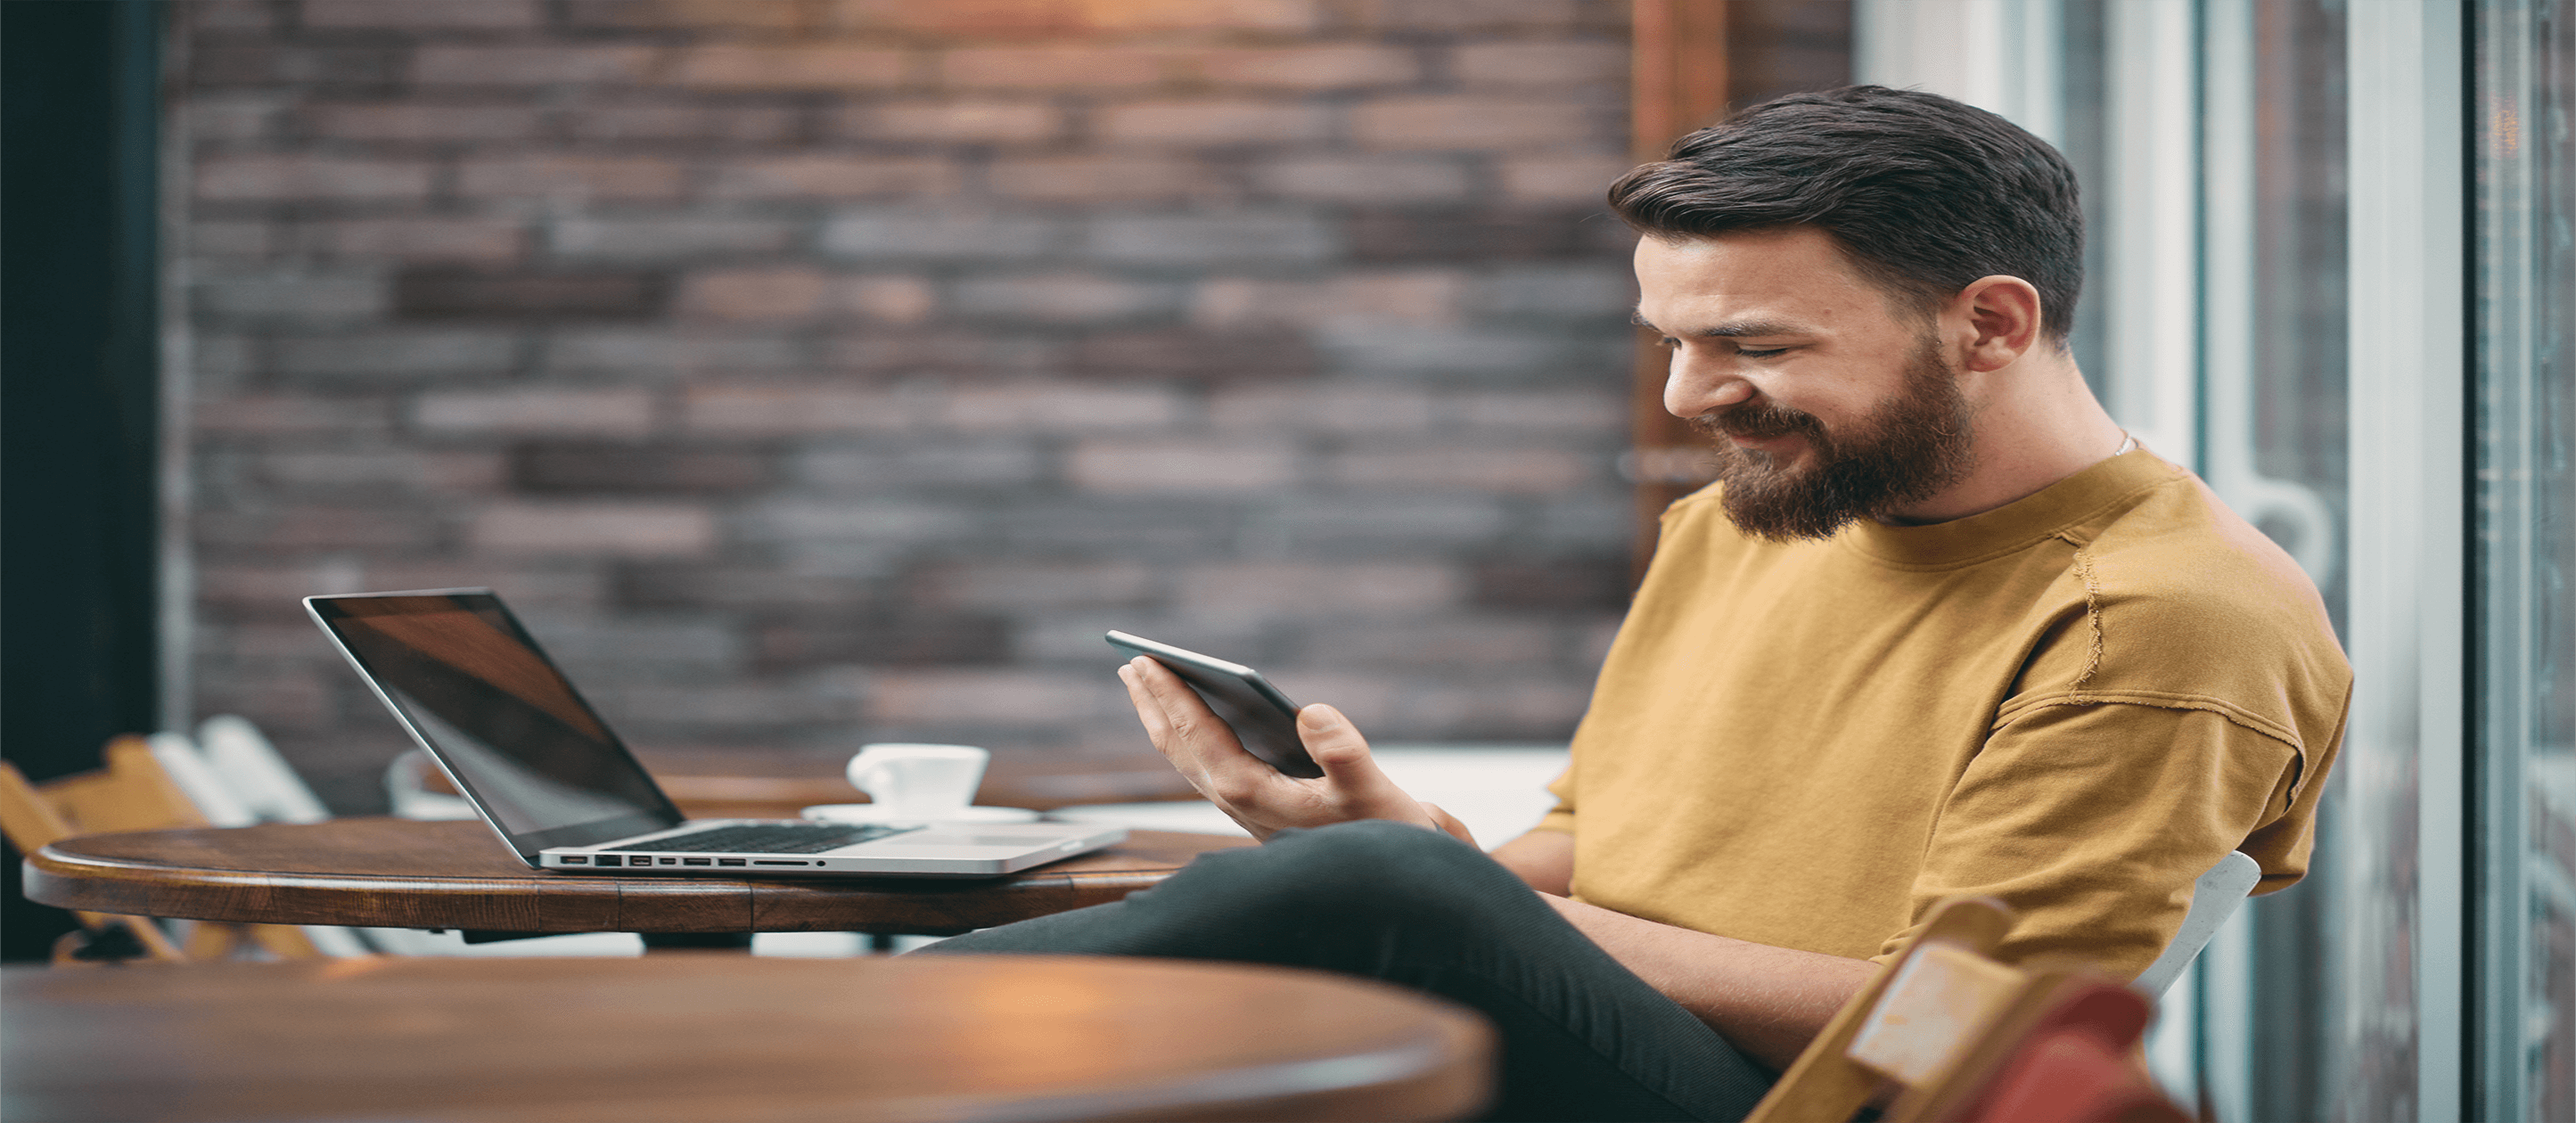 Image of man with laptop looking at smartphone